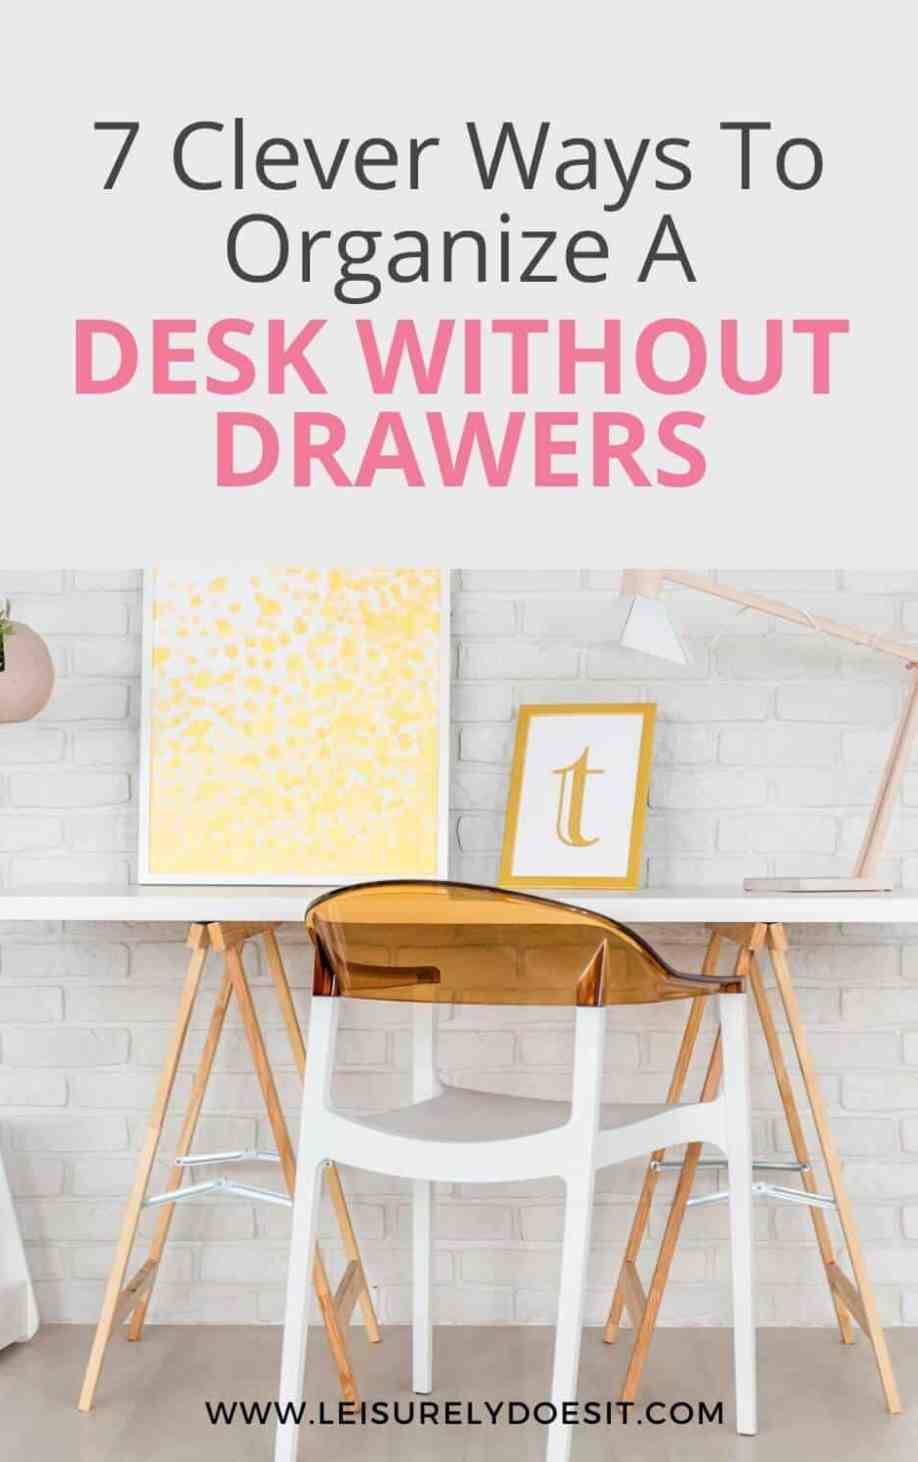 7 Clever Ways To Organize A Desk Without Drawers